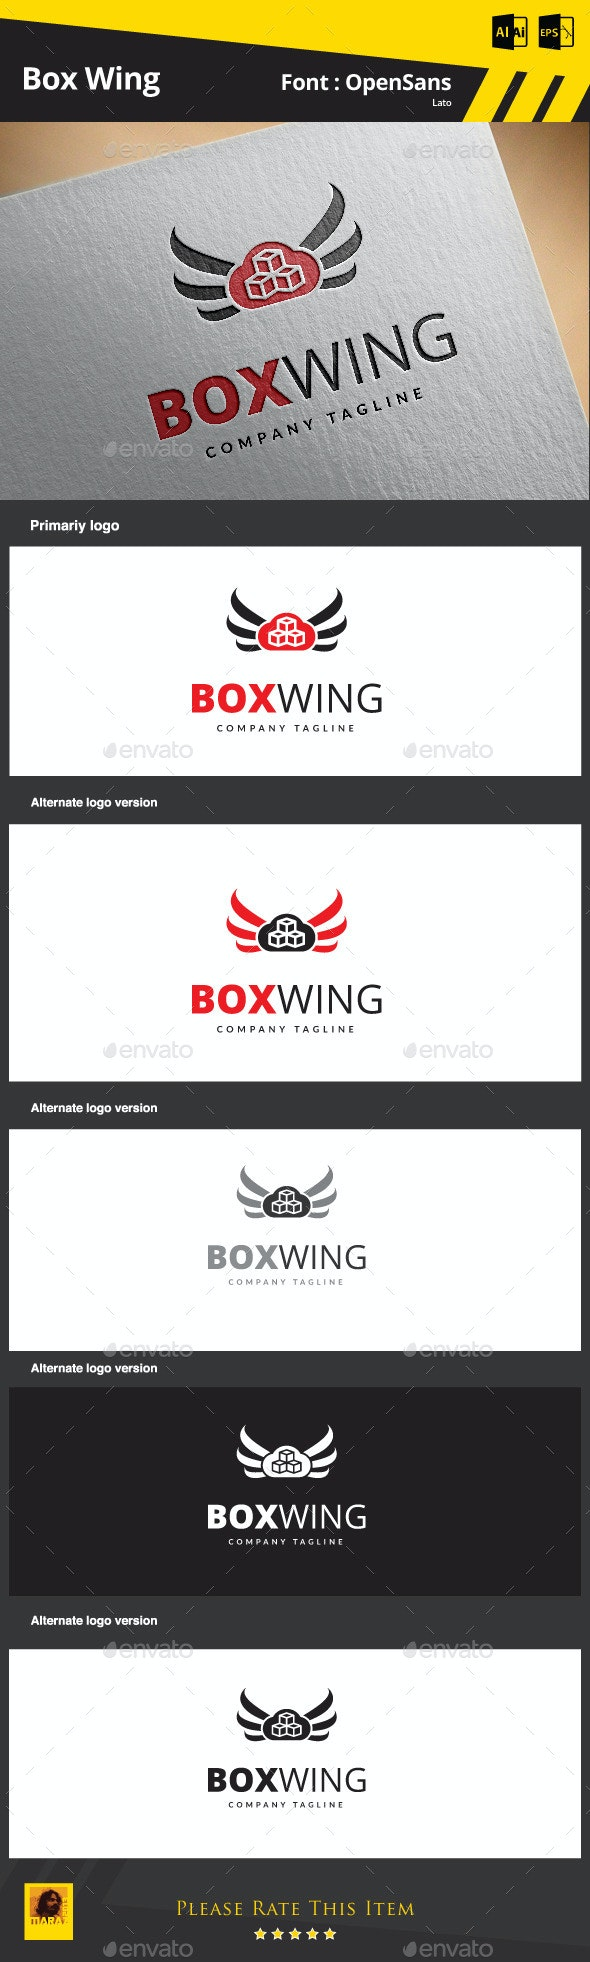 Box Wing - Objects Logo Templates